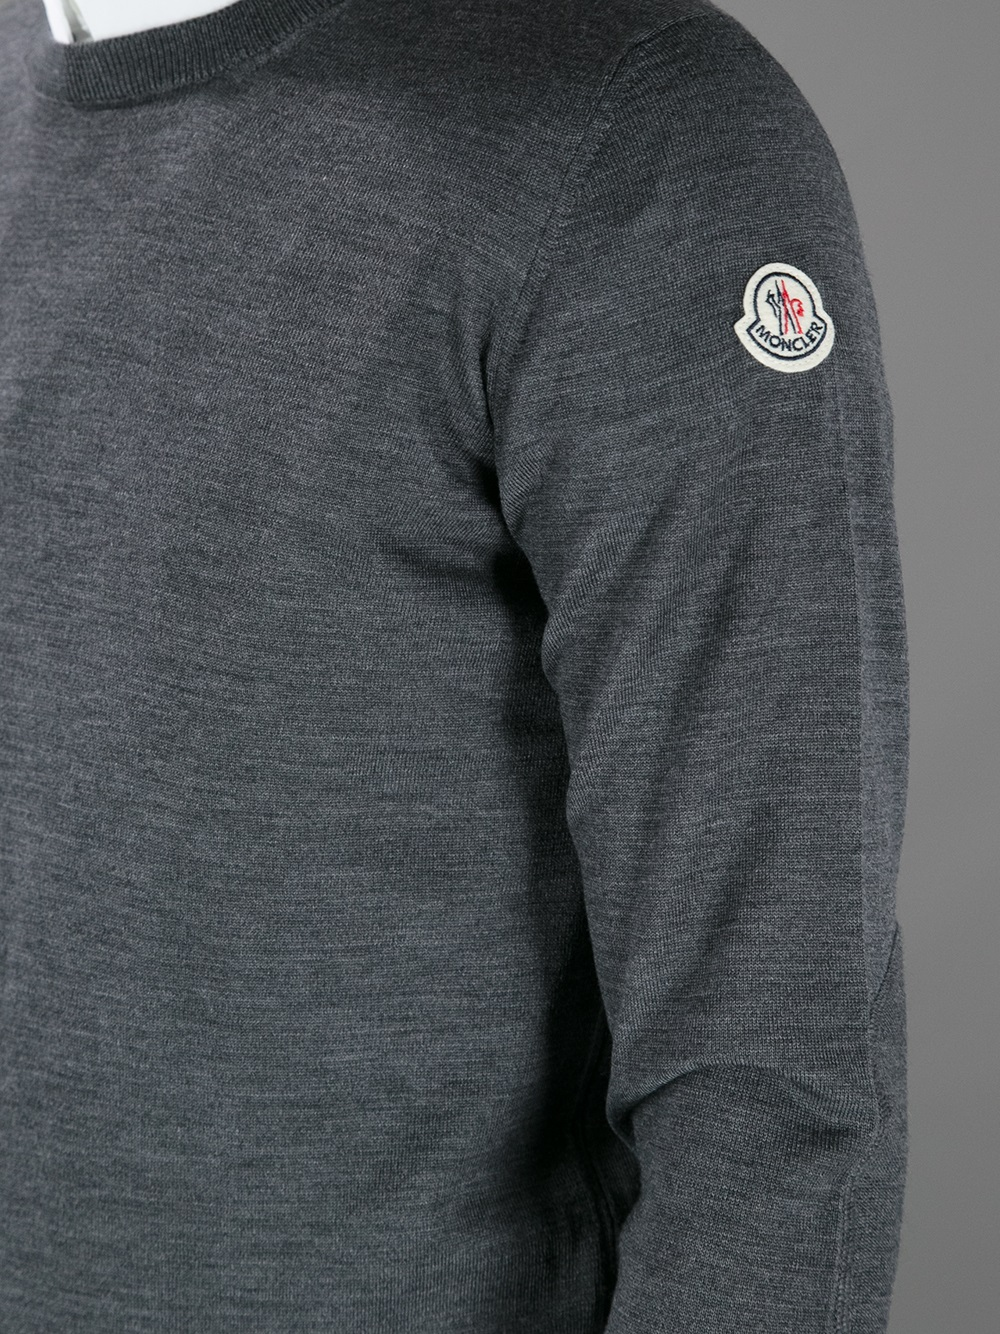 Moncler Branded Crew Neck Sweater in Grey (Grey) for Men